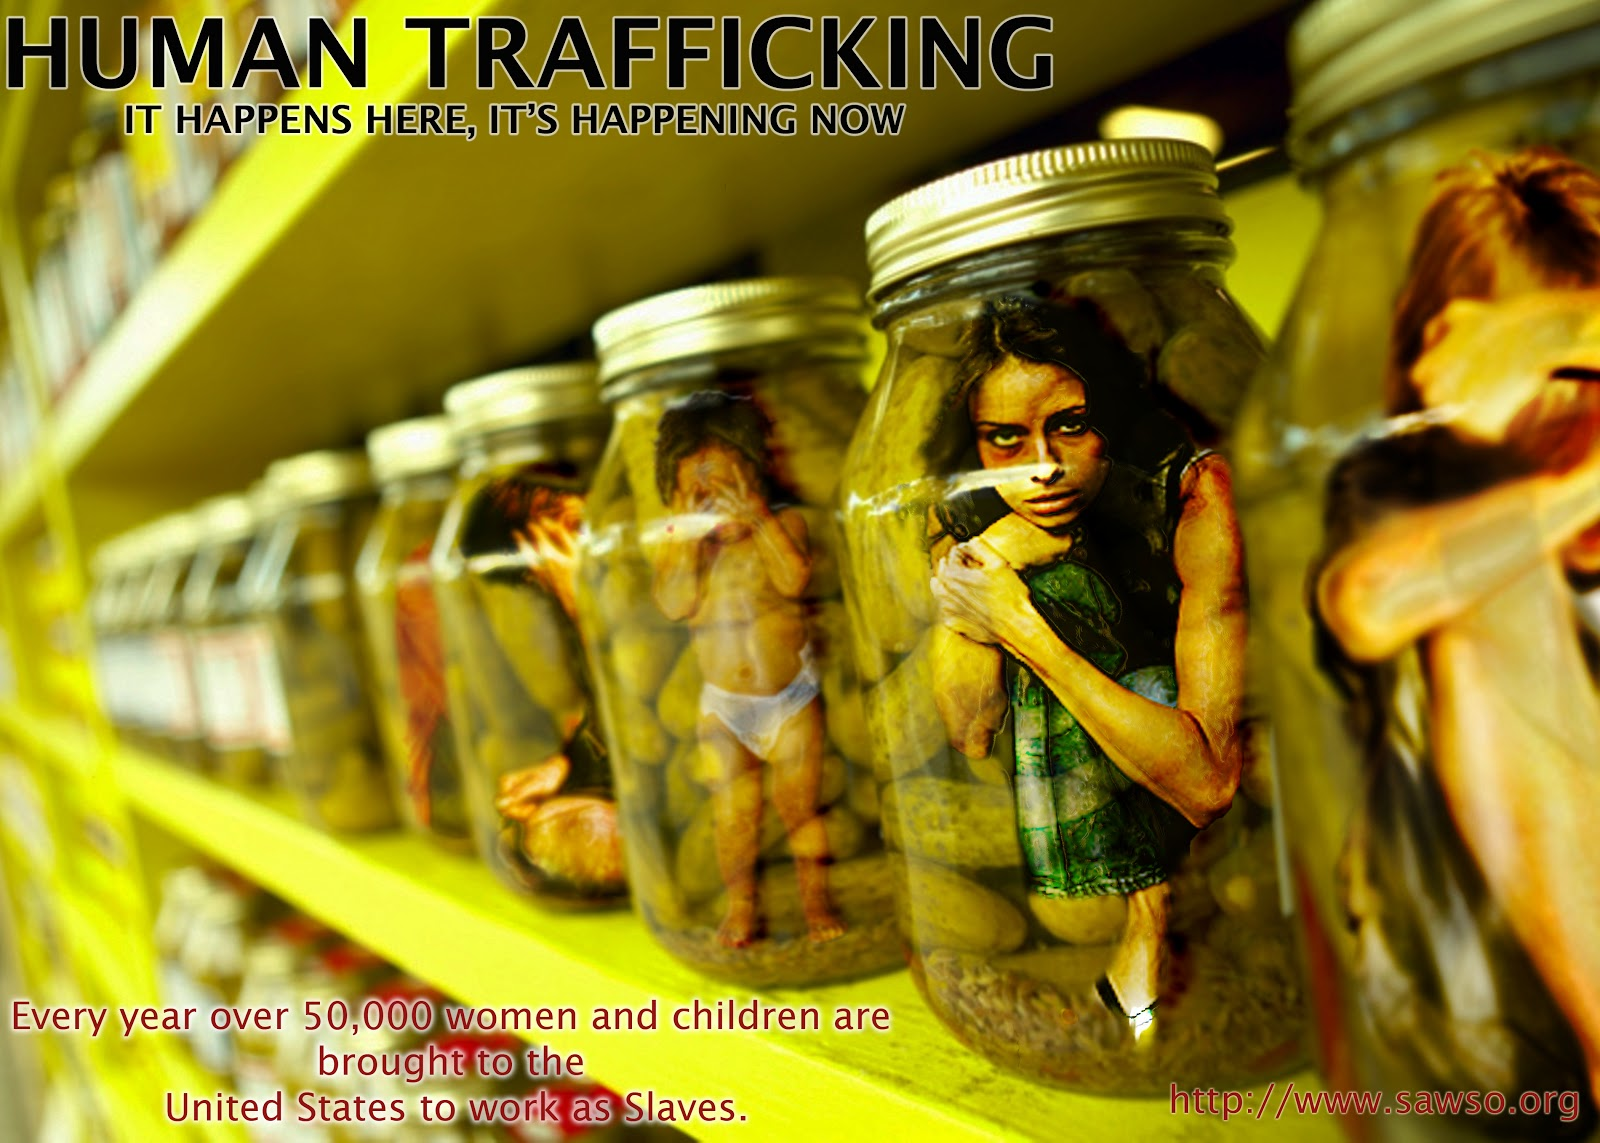 imagery and culture sp child human trafficking child human trafficking